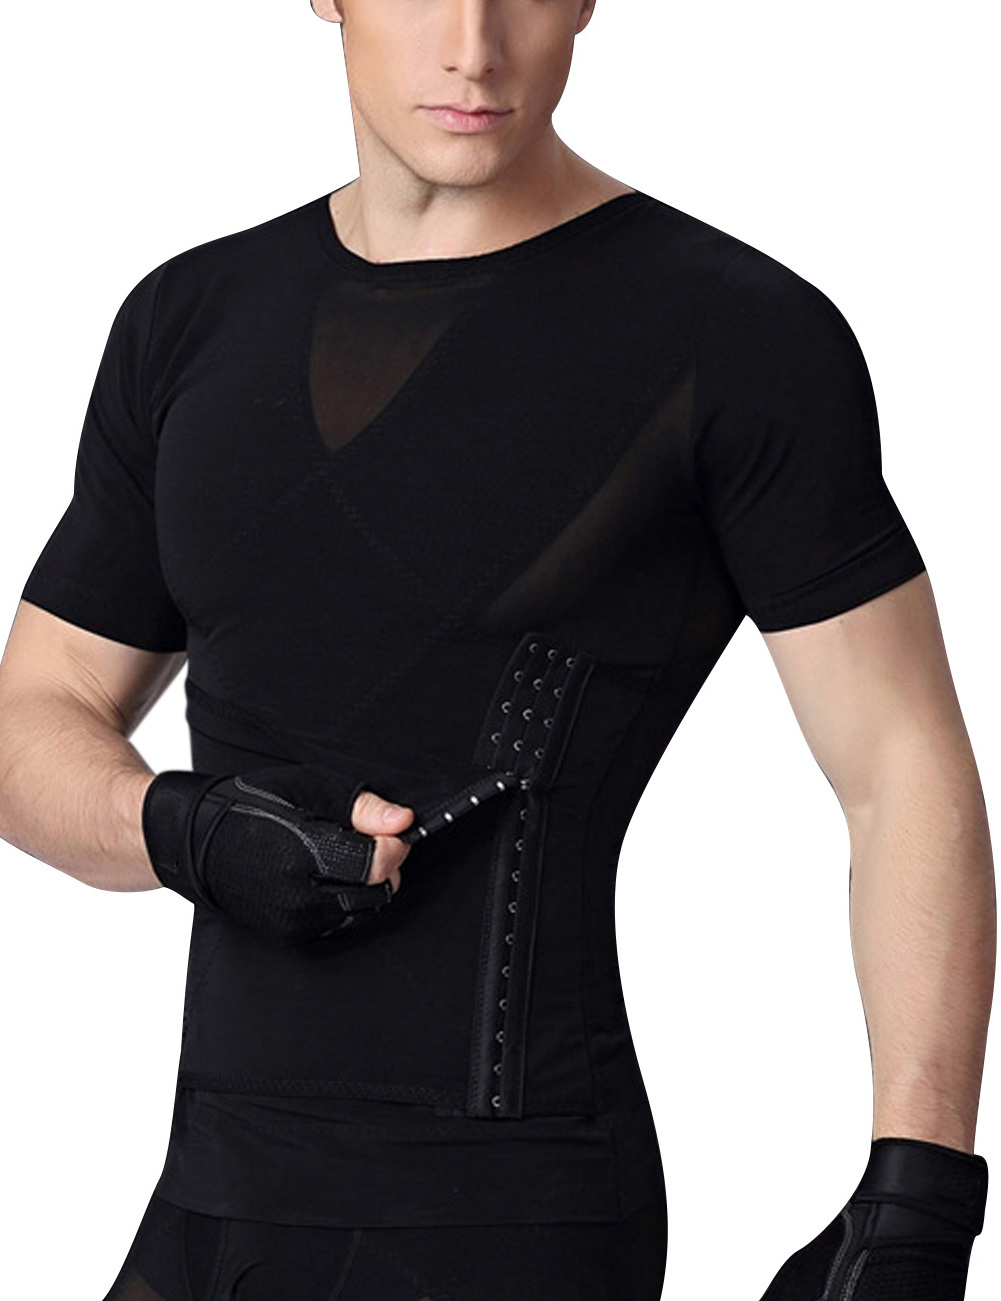 //cdn.affectcloud.com/hexinfashion/upload/imgs/Shaper/Men_Shaper/B180034BK01/B180034BK01-201911055dc1402a5caac.jpg